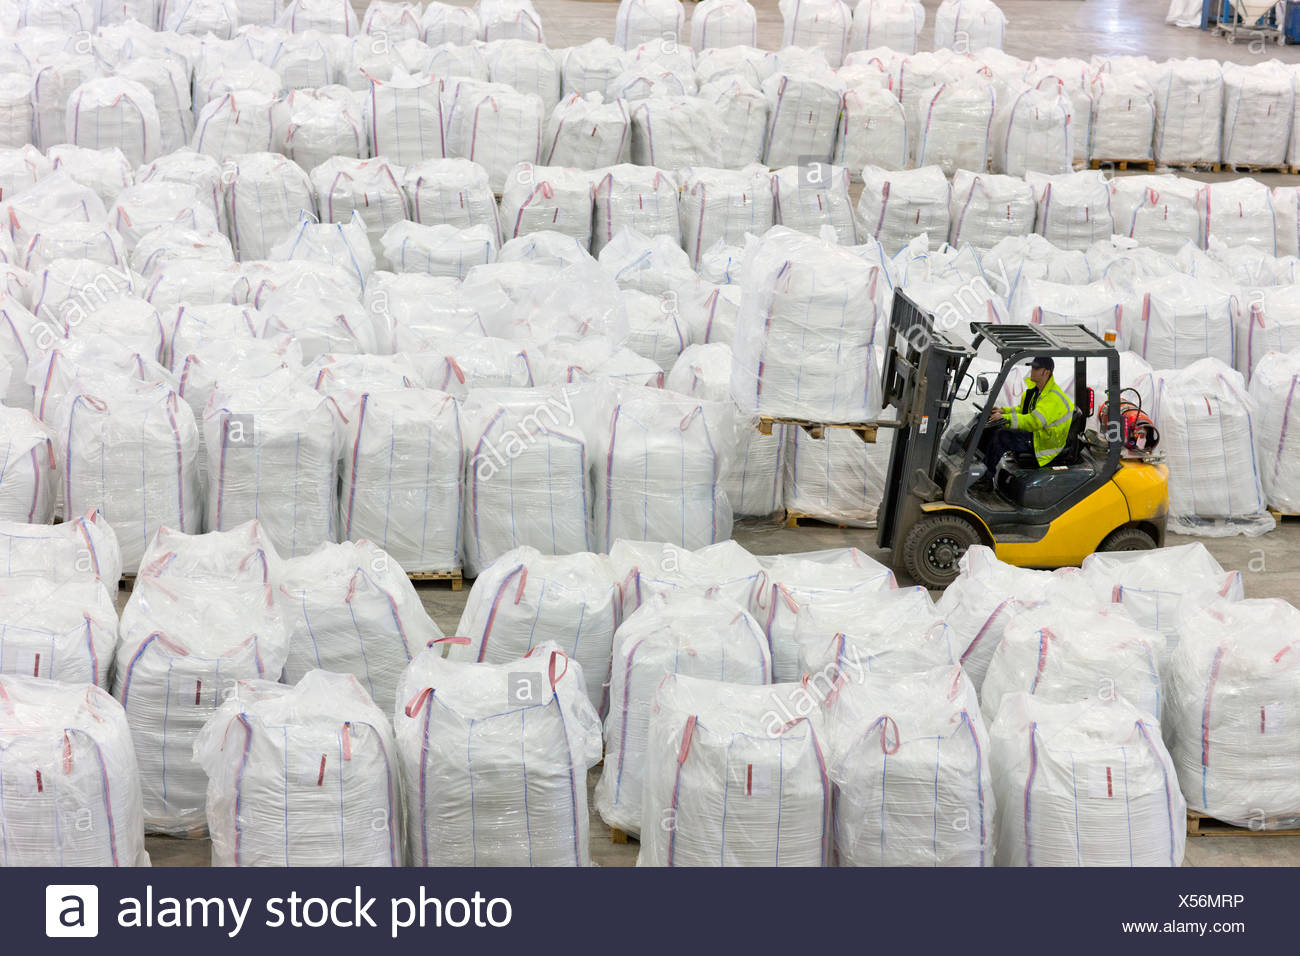 Forklift operator lifting large bag of recycled plastic pellets in warehouse - Stock Image